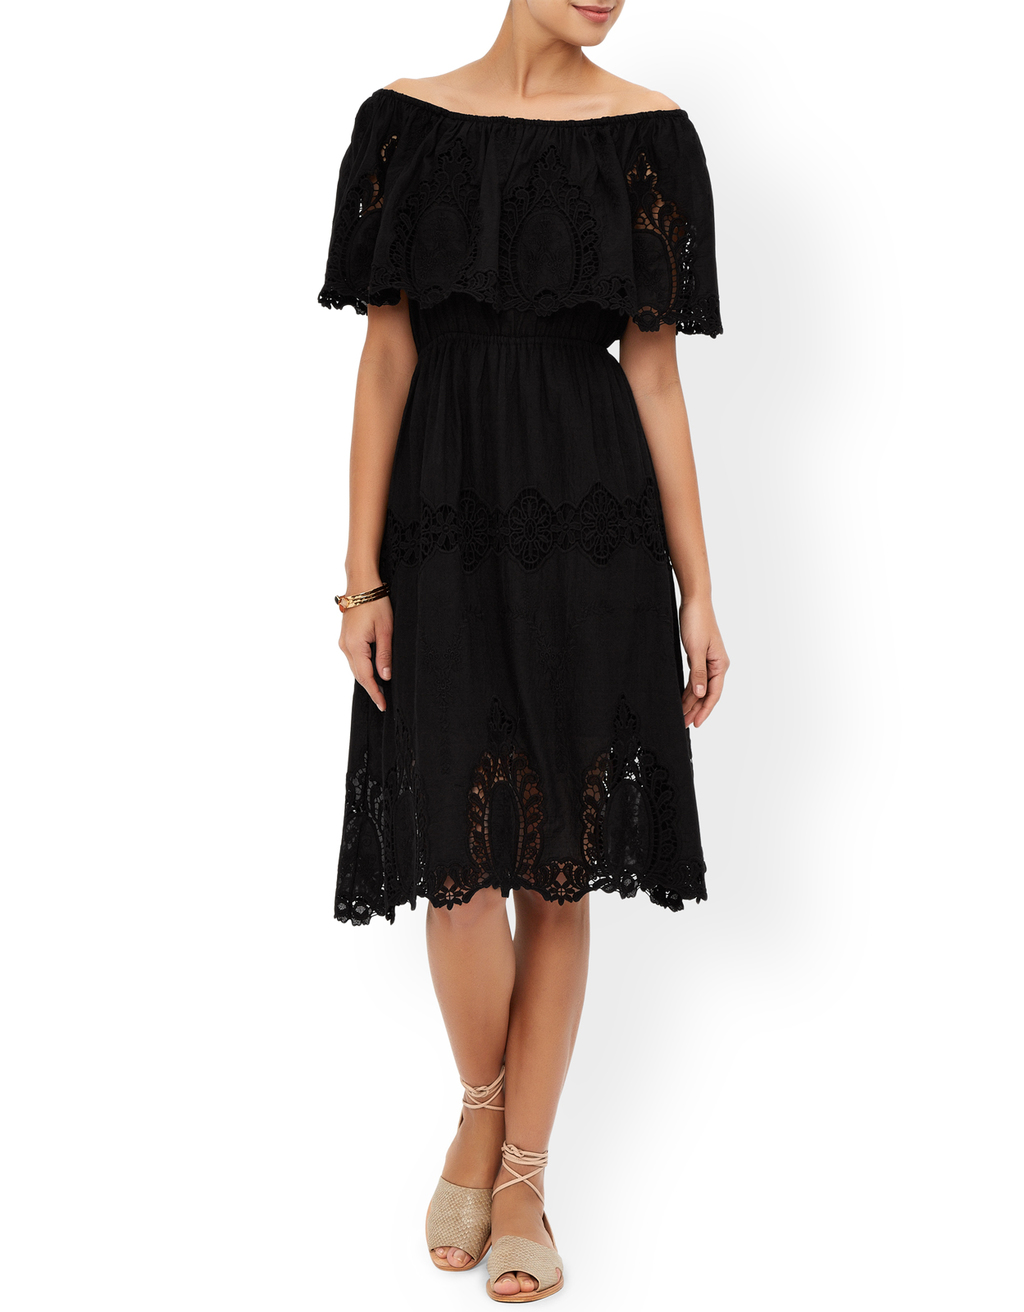 Marilyn Dress - length: below the knee; neckline: off the shoulder; sleeve style: angel/waterfall; fit: fitted at waist; waist detail: fitted waist; predominant colour: black; occasions: casual, holiday; style: fit & flare; fibres: cotton - 100%; hip detail: soft pleats at hip/draping at hip/flared at hip; sleeve length: half sleeve; texture group: cotton feel fabrics; pattern type: fabric; pattern size: standard; pattern: patterned/print; embellishment: embroidered; season: s/s 2016